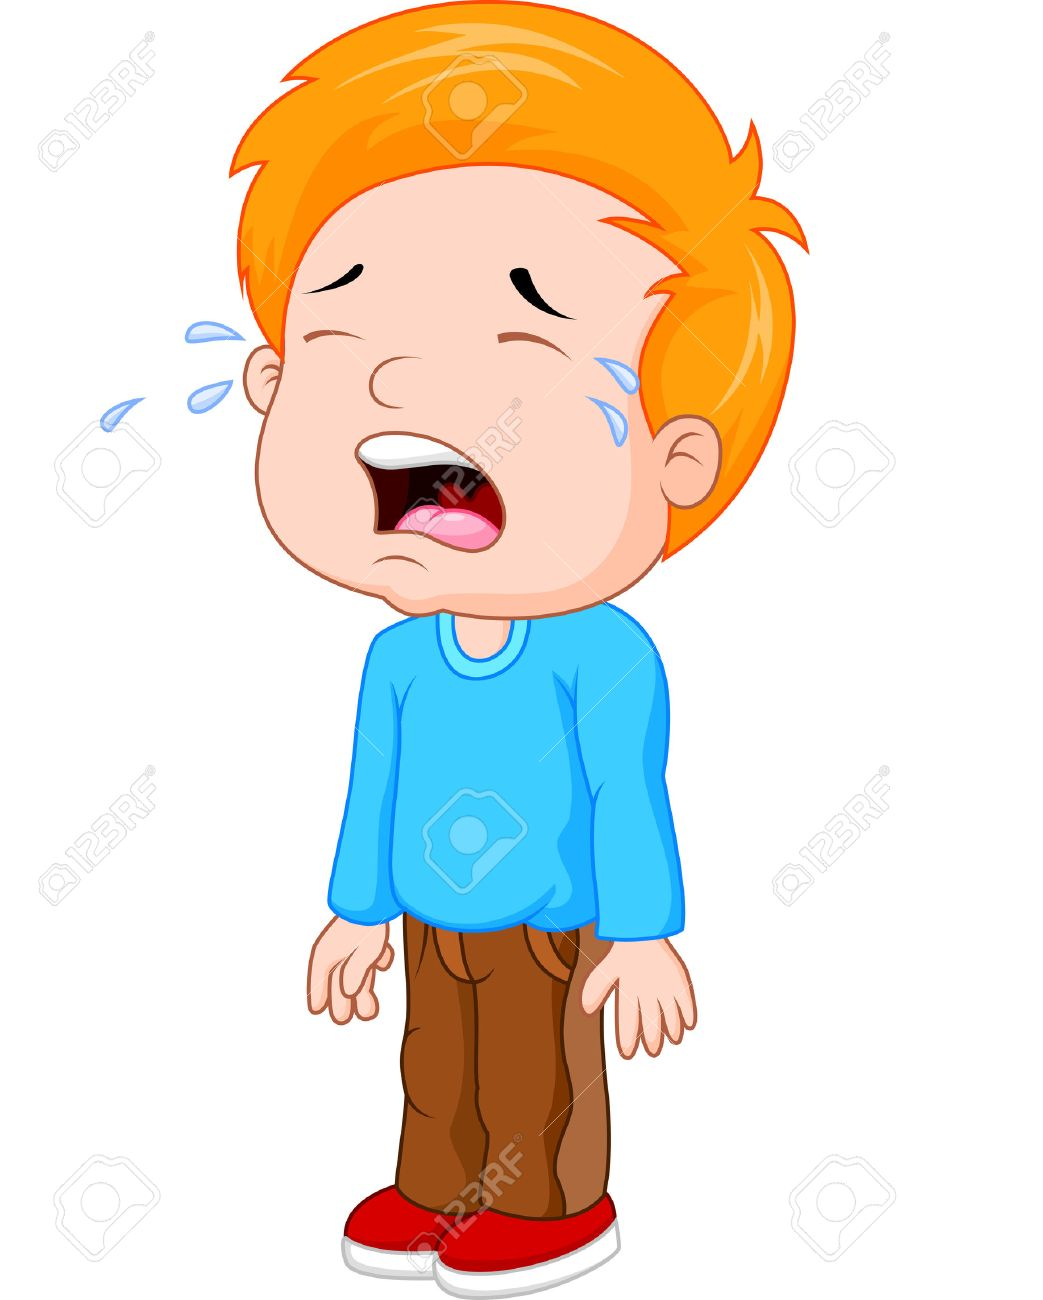 Child crying clipart 6 » Clipart Station.